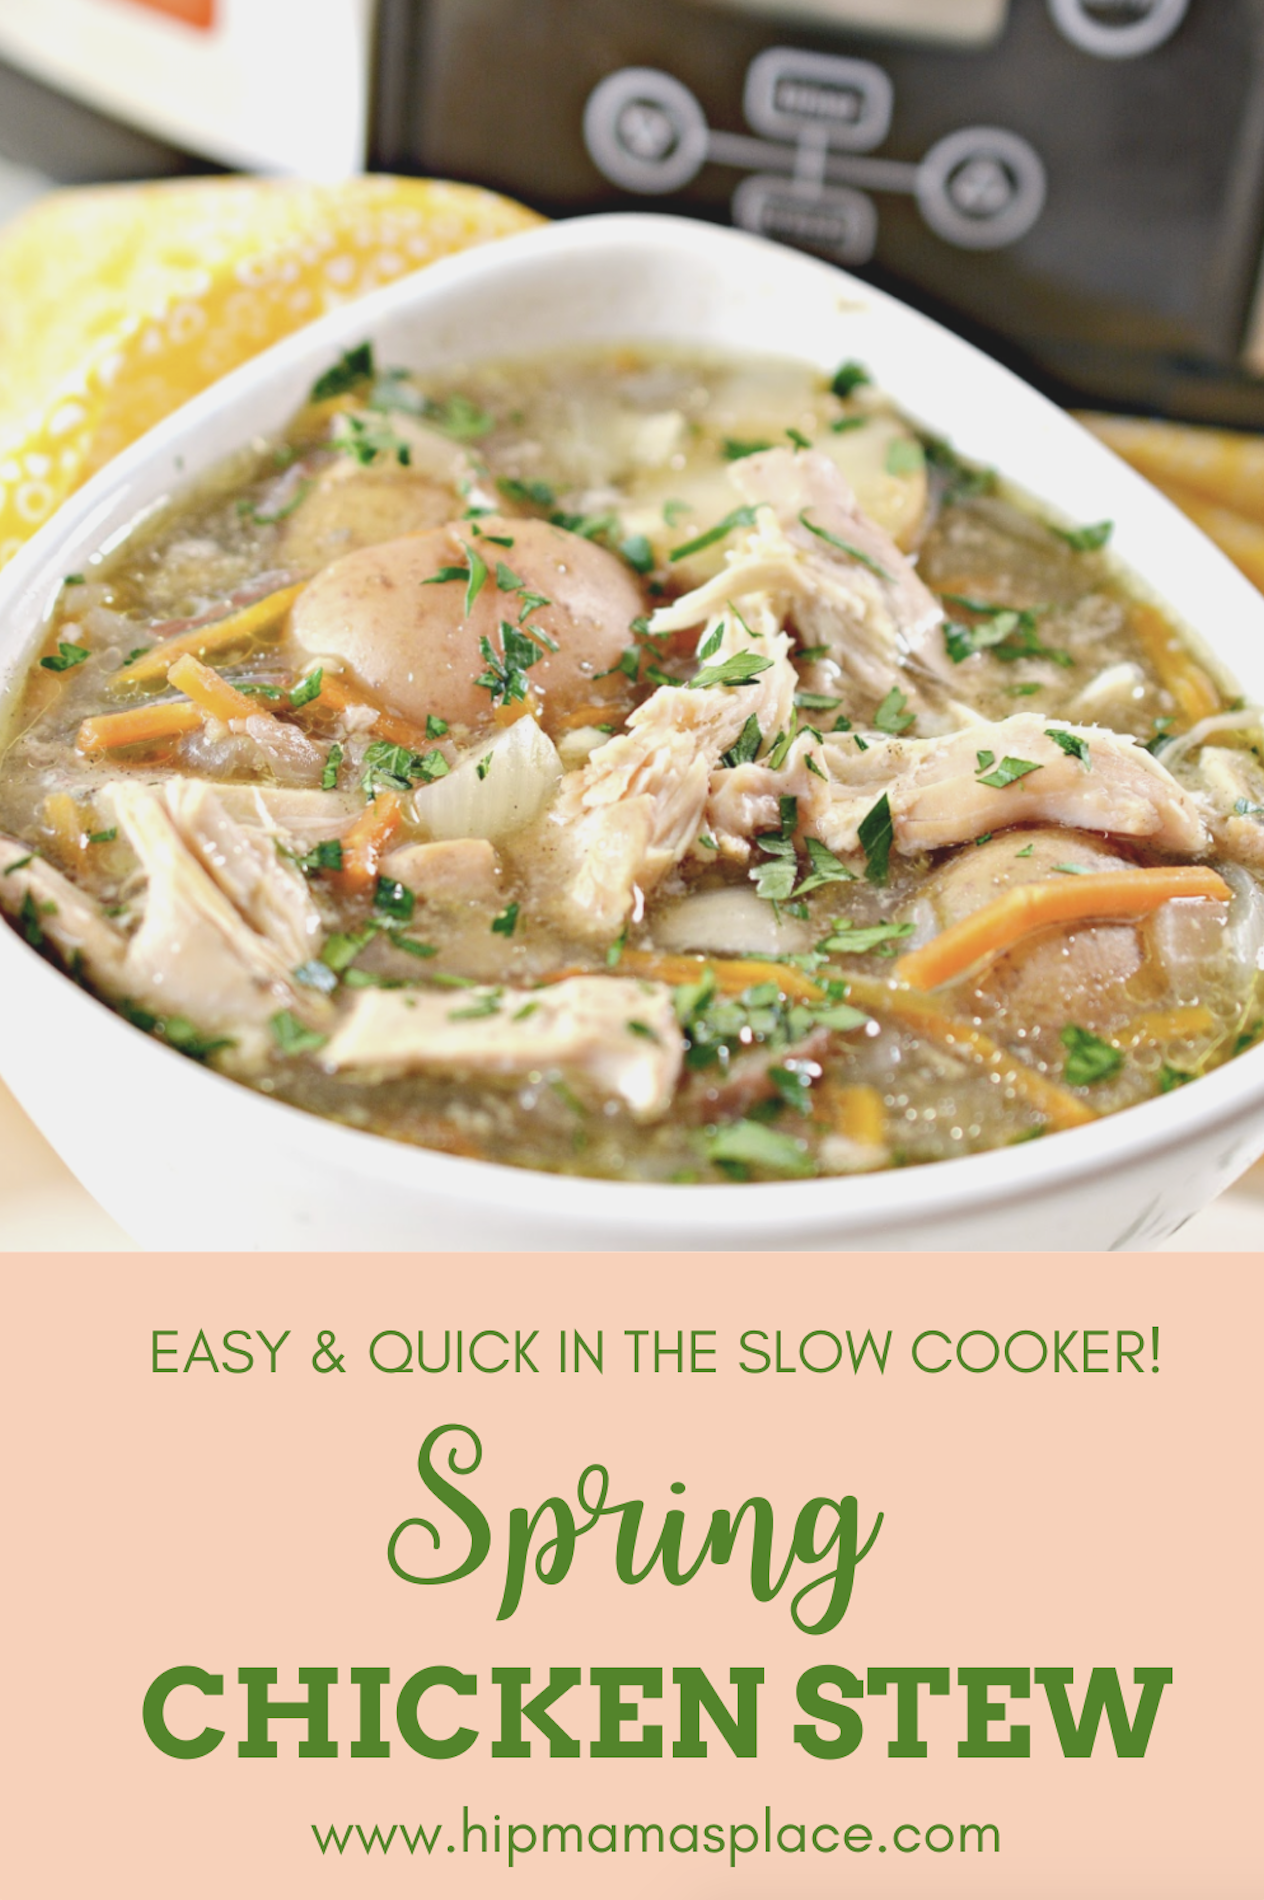 Try this hearty spring-inspired chicken vegetable stew with sweet Vidalia onions, potatoes, carrots and fresh spices - so easy and quick in the slow cooker!#AD #OnlyVidalia #easymeals #slowcookermeals #quickdinner #easyrecipes #comfortfood